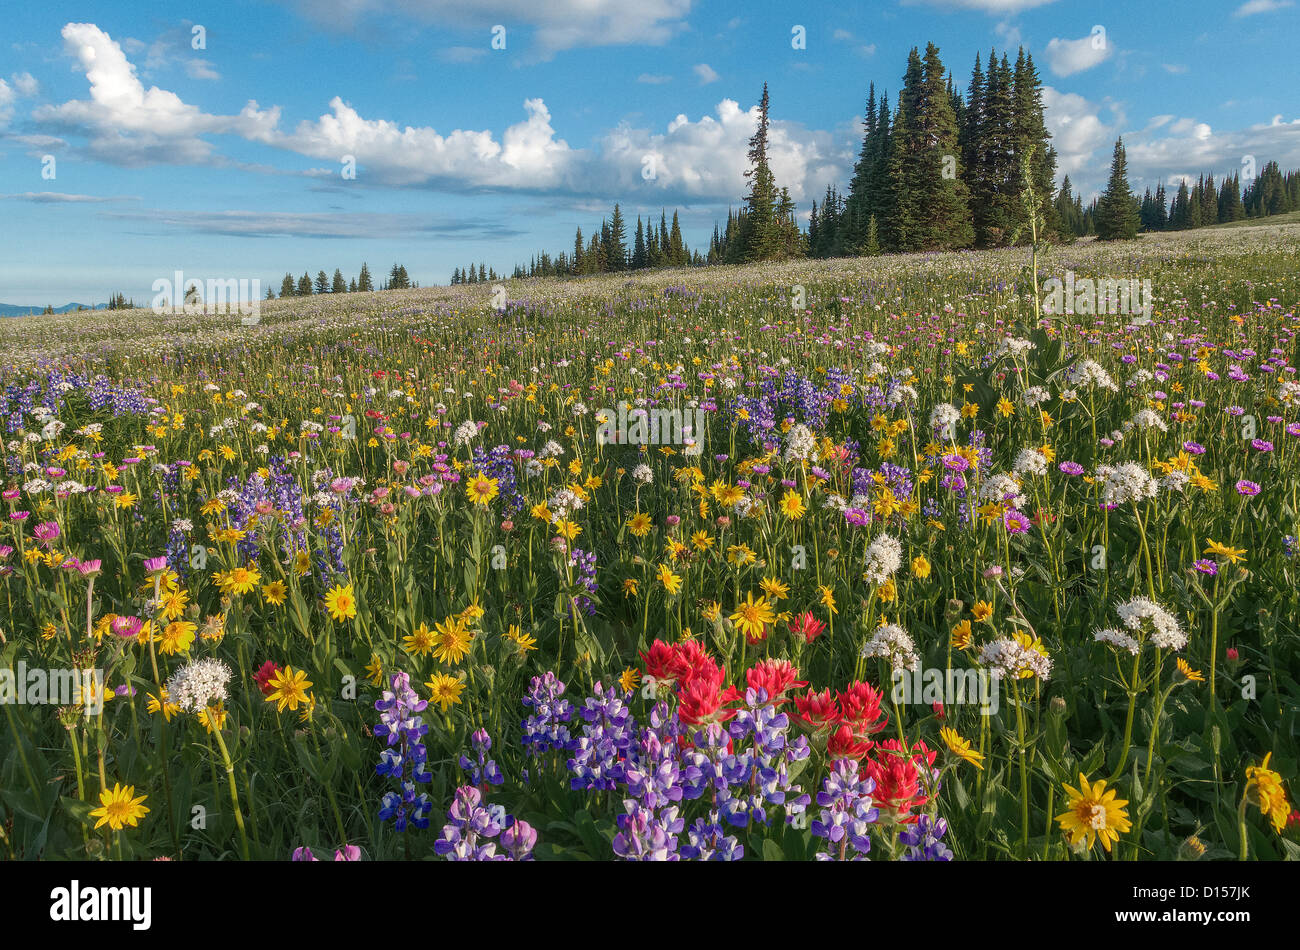 Wildflowers, Trophy Meadows, Wells Gray Provincial Park, British Columbia, Canada - Stock Image